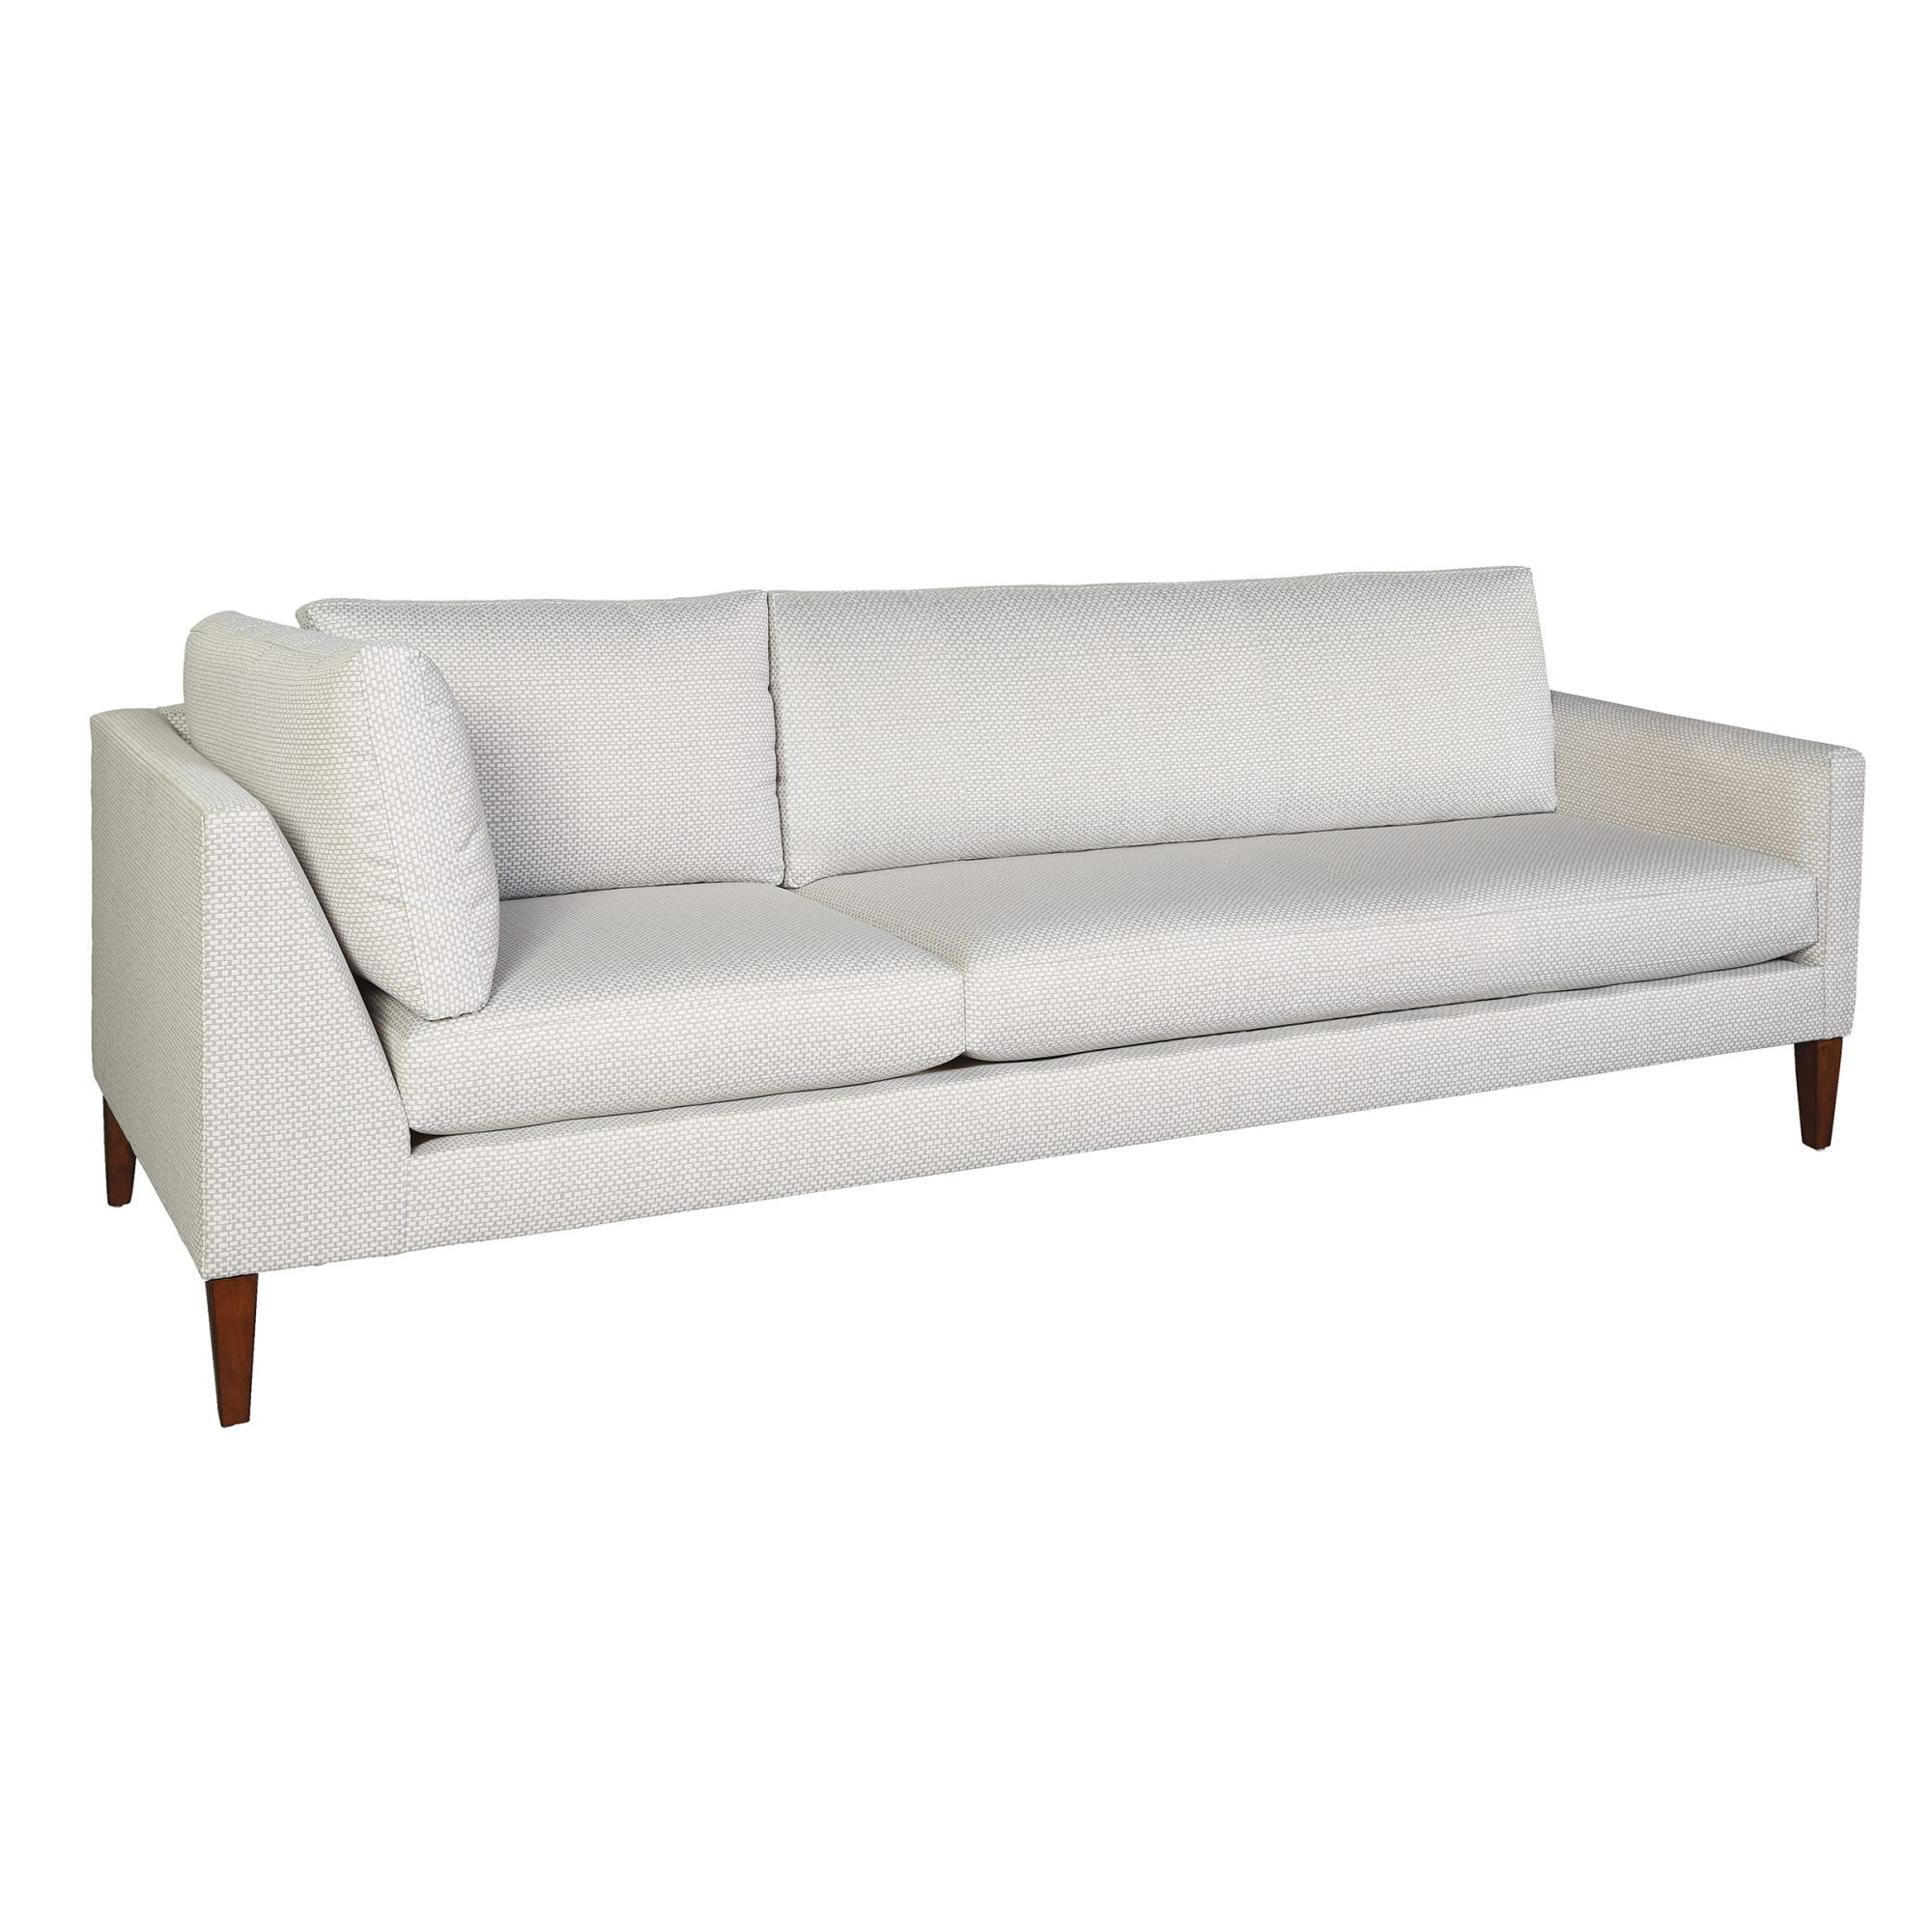 Image for 174190 Metro Track Arm Corner Sofa RAF from Hekman Official Website